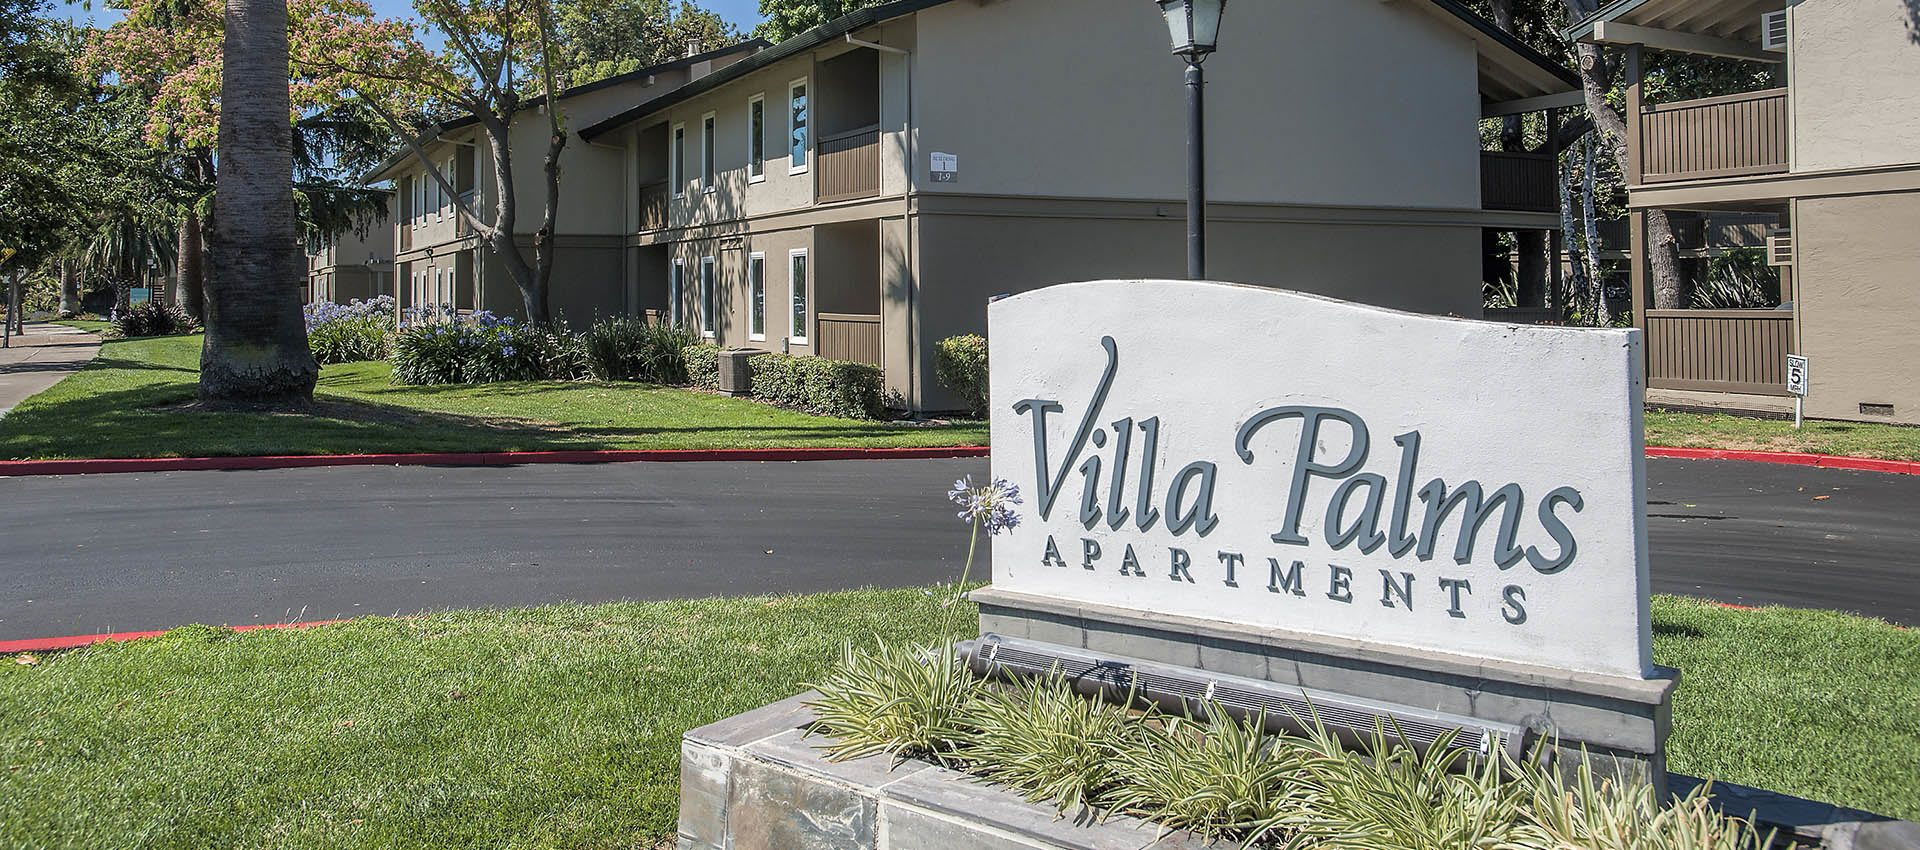 Signage at Villa Palms Apartment Homes in Livermore, California